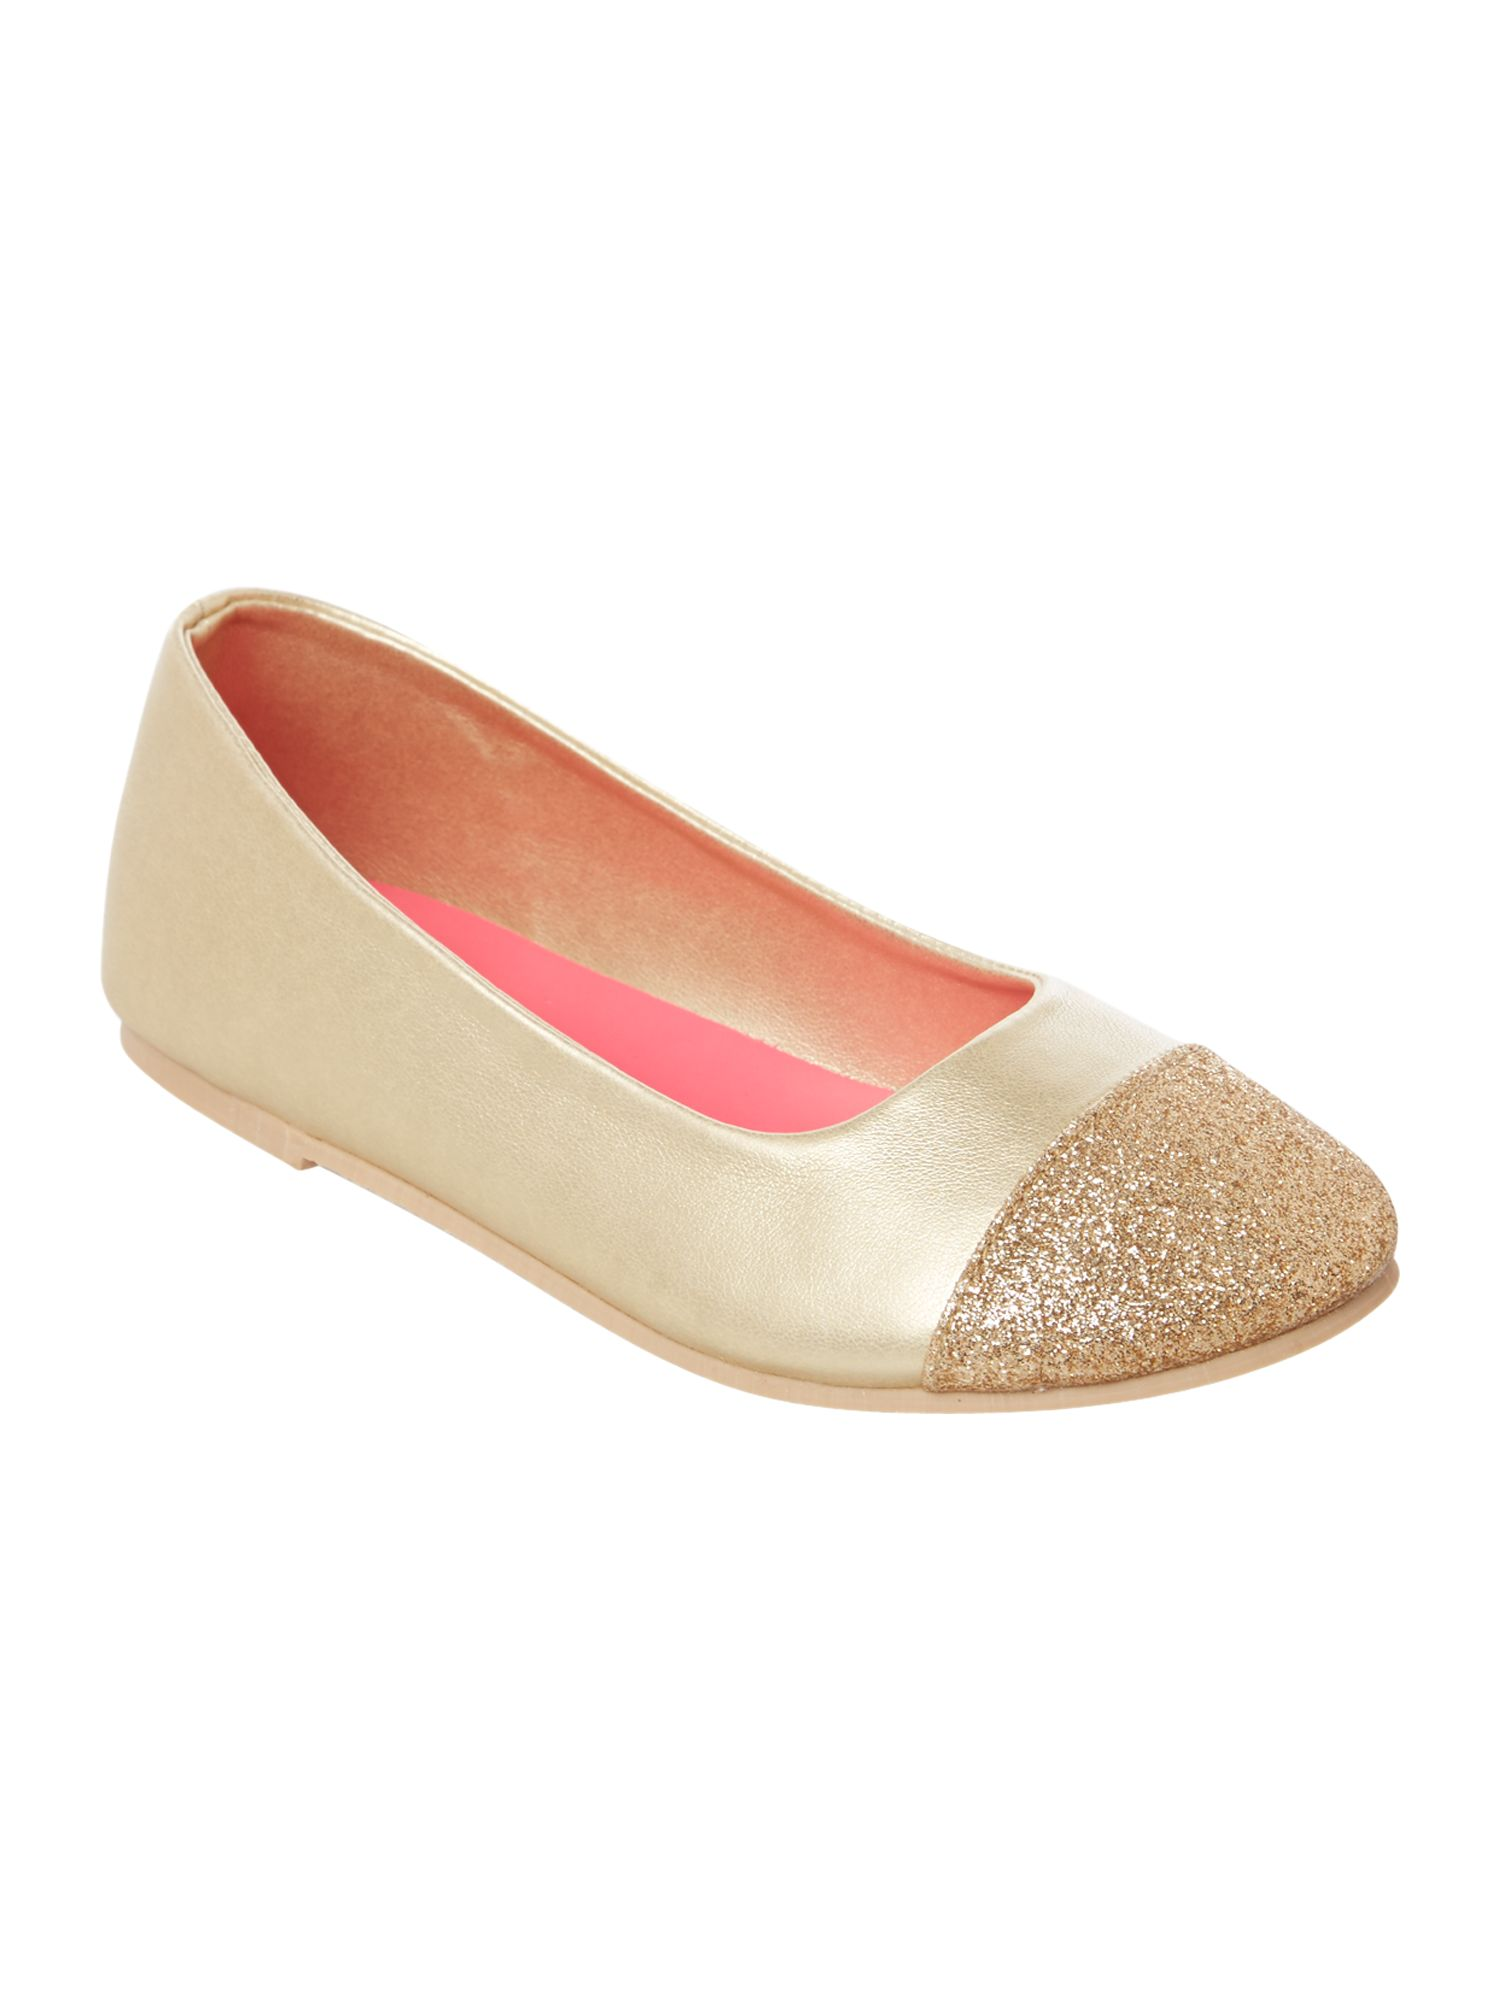 Girls iridescent ballerina pumps